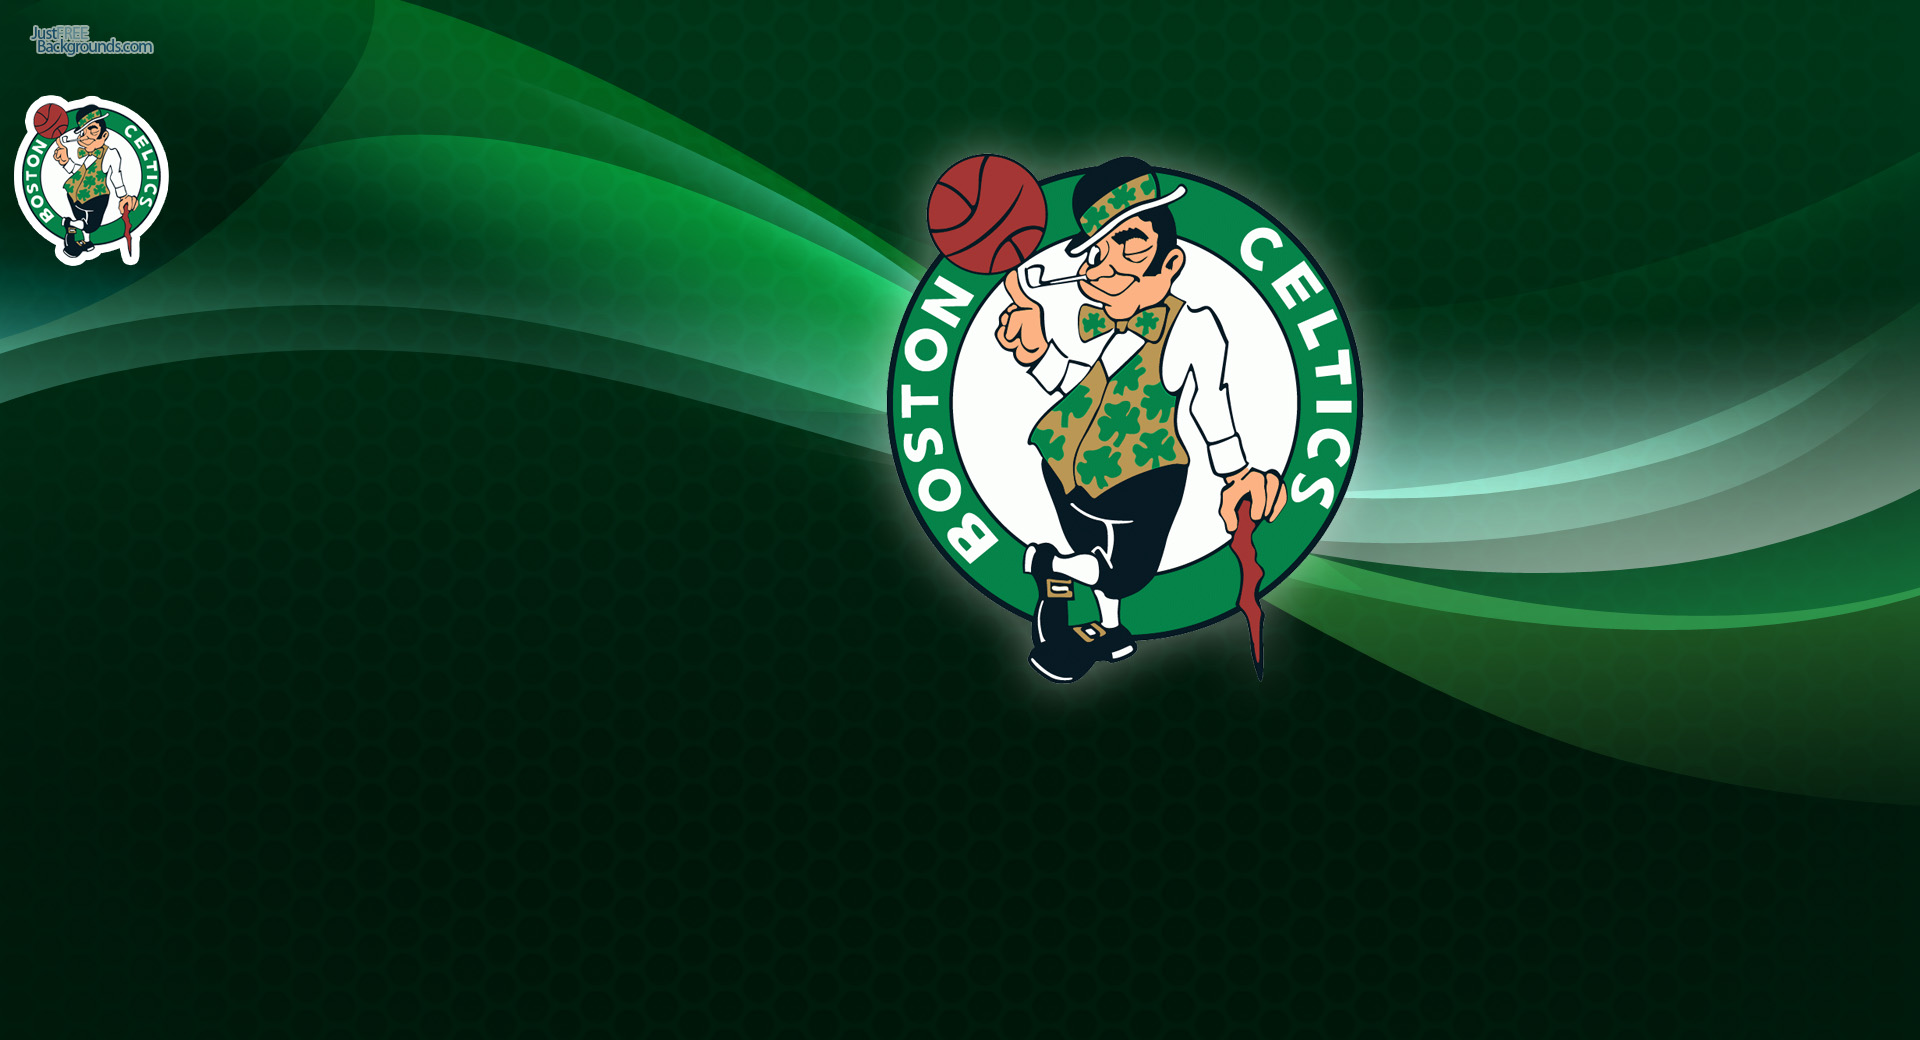 Free Download Sports Wallpapers Boston Celtics Wallpapers